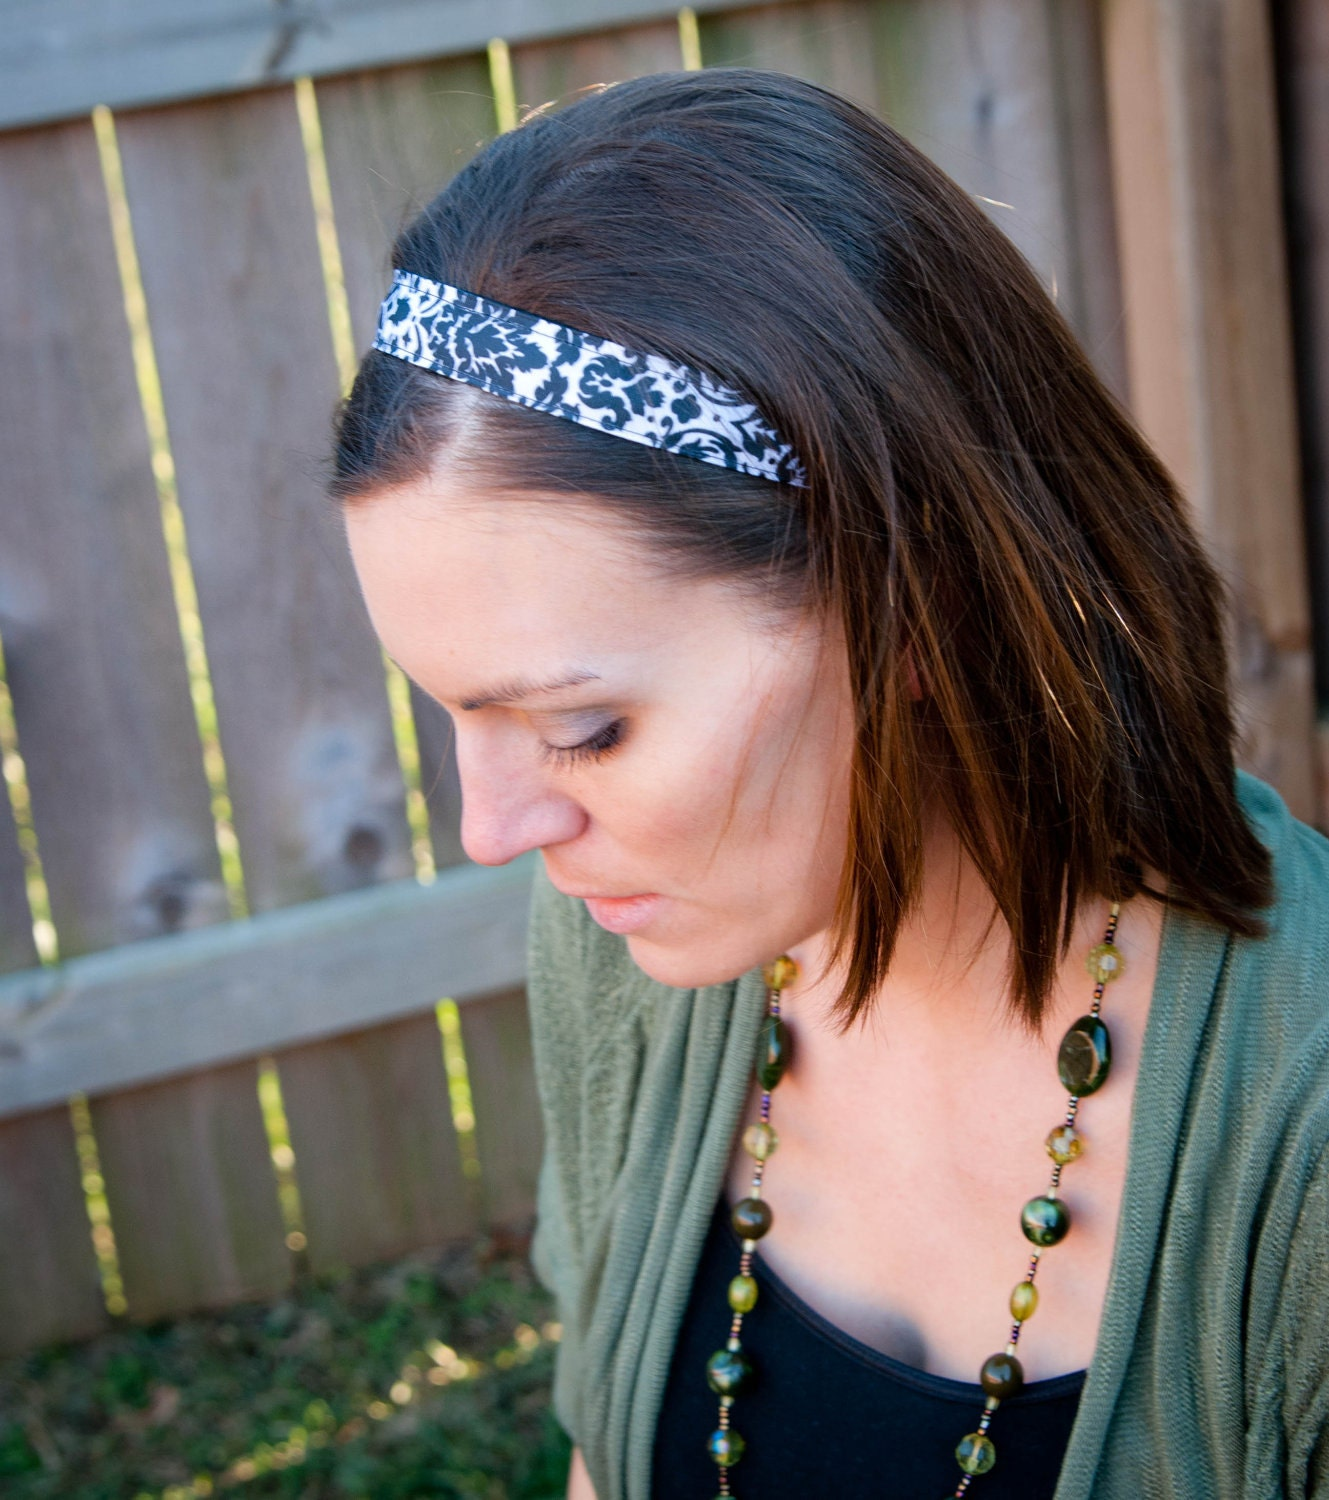 Exercise Hair Bands: Your Place To Buy And Sell All Things Handmade